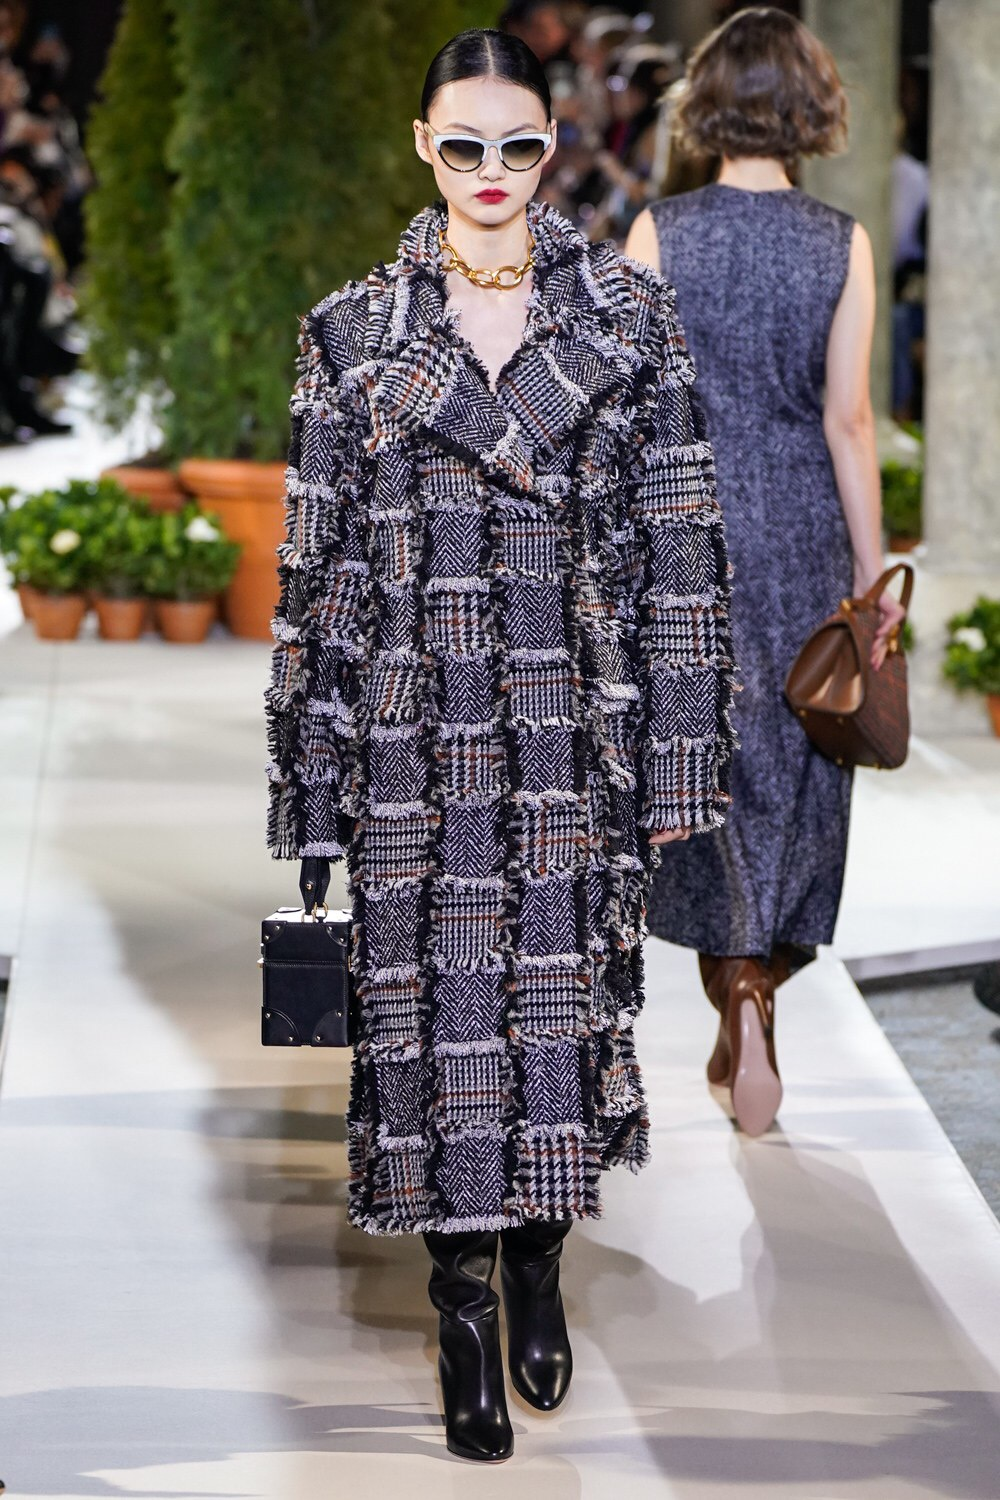 Best NYFW Looks I Oscar de la Renta Fall 2019 Collection #NYFW #Fall2019 #FW19 #Runway